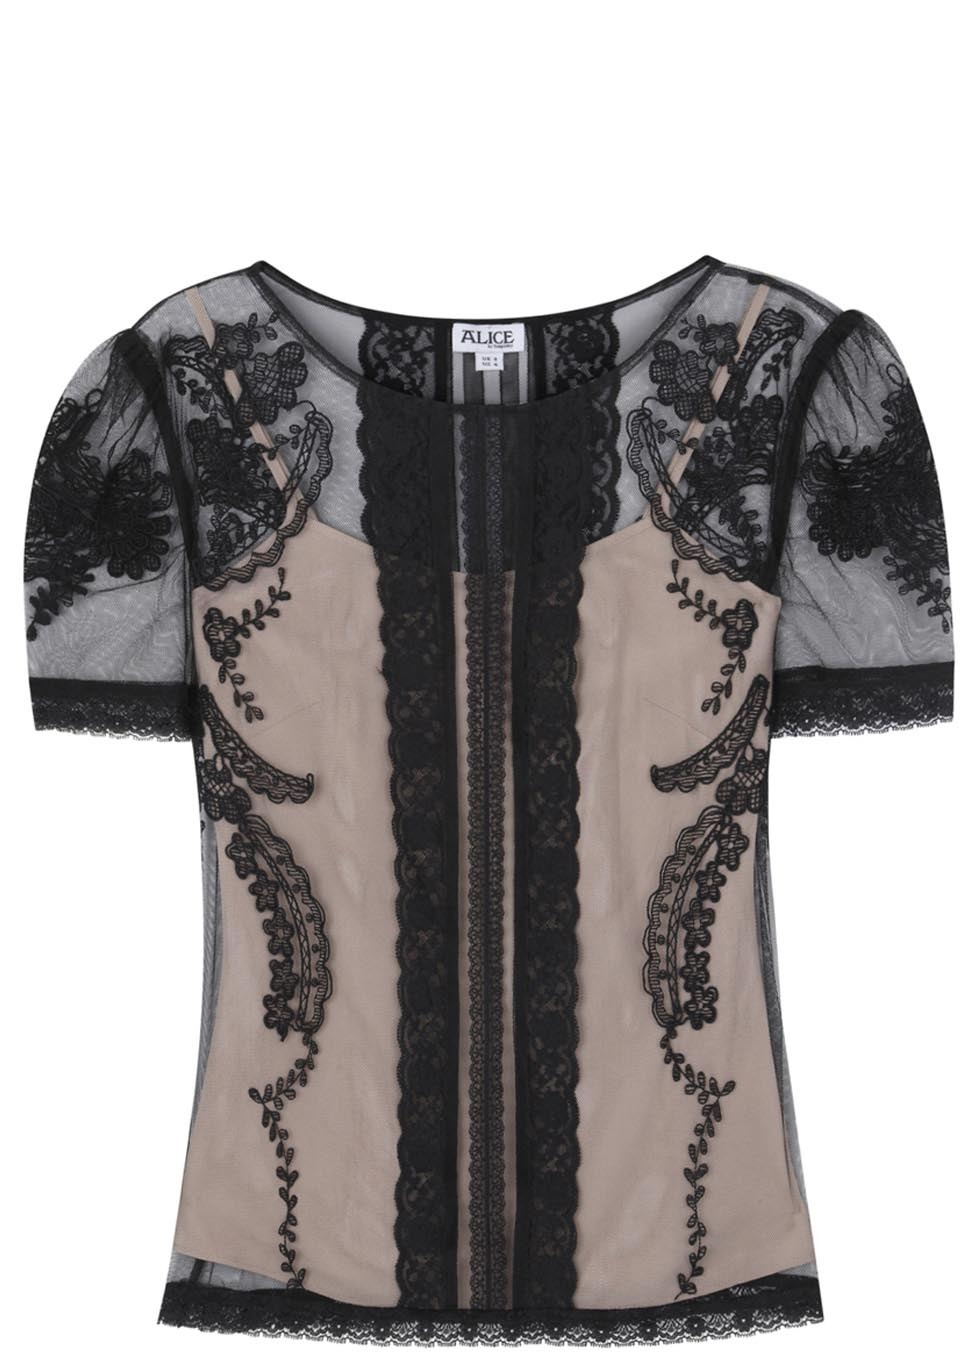 Black Botanical Lace Top - neckline: round neck; pattern: plain; secondary colour: nude; predominant colour: black; occasions: evening, creative work; length: standard; style: top; fibres: polyester/polyamide - 100%; fit: straight cut; sleeve length: short sleeve; sleeve style: standard; texture group: sheer fabrics/chiffon/organza etc.; pattern type: fabric; trends: lace; season: s/s 2014